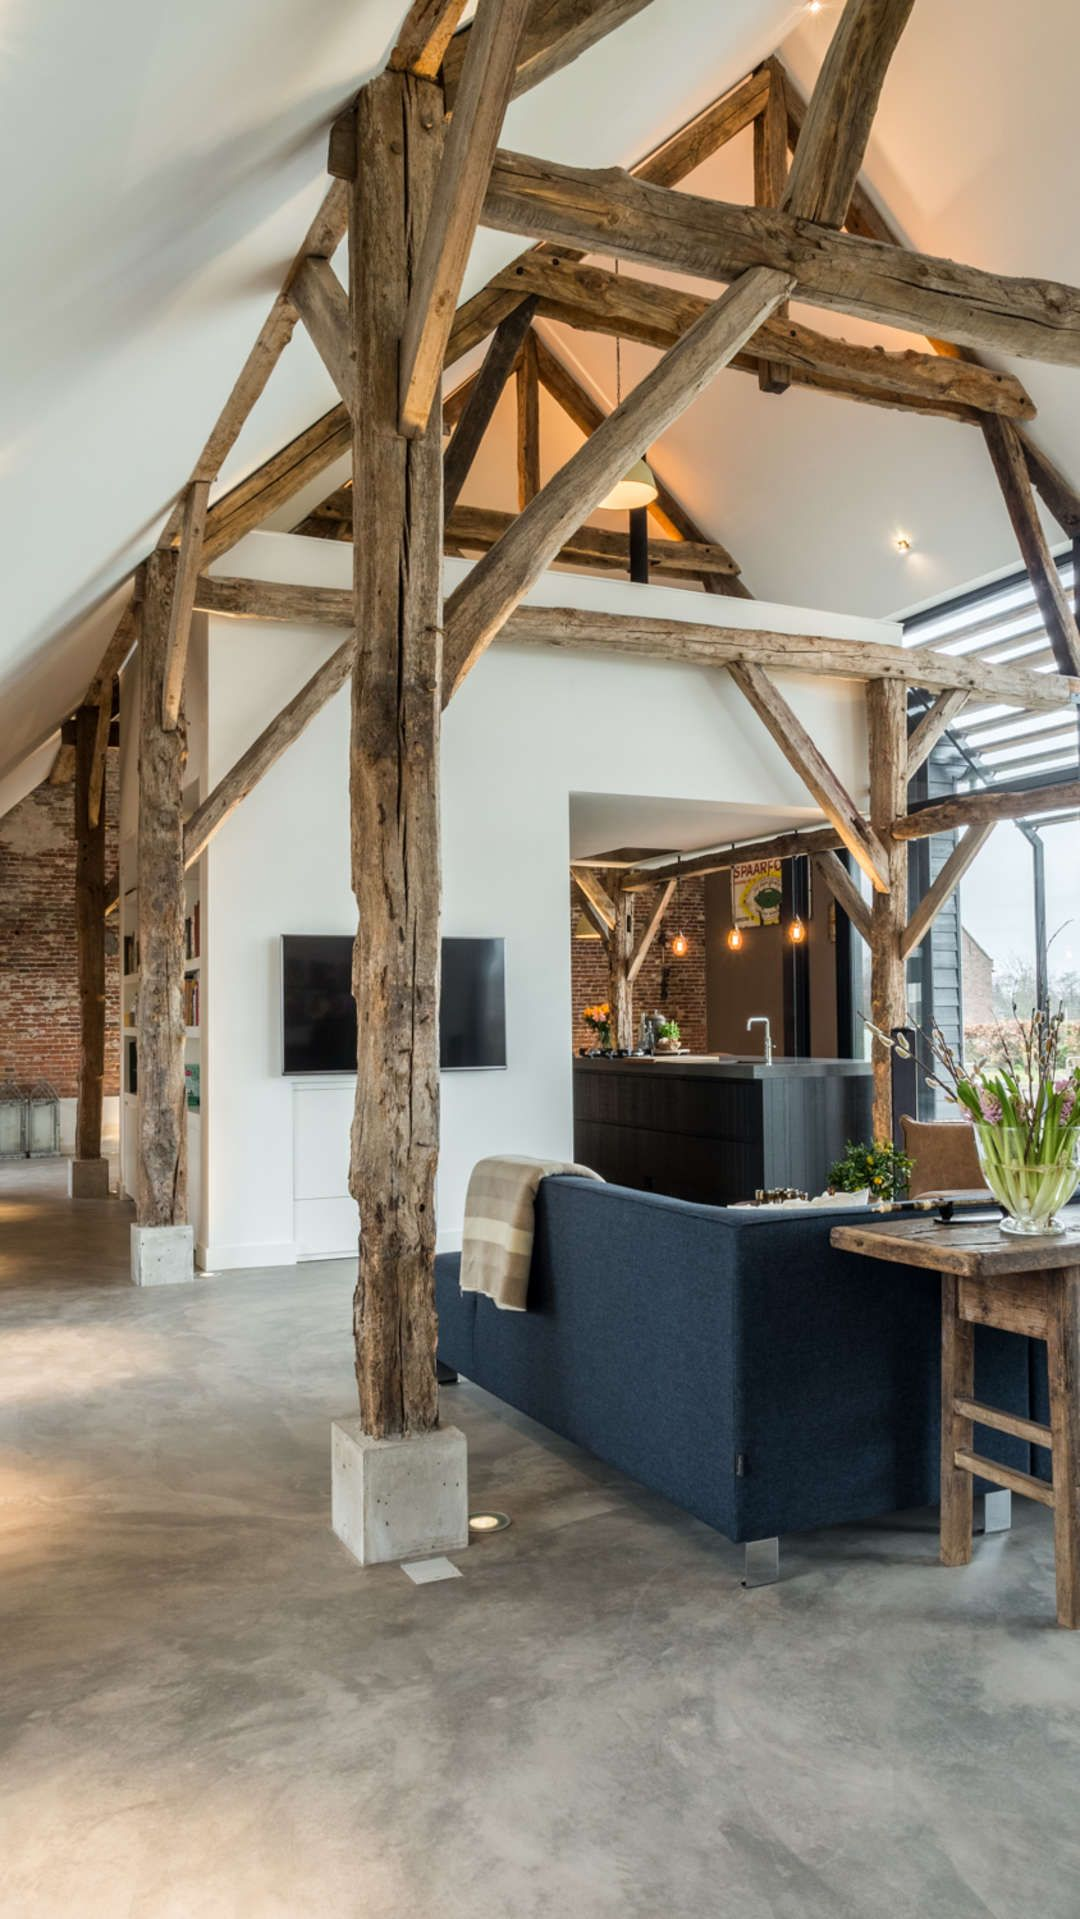 Converting an old farm into a warm industrial farmhouse with big ...